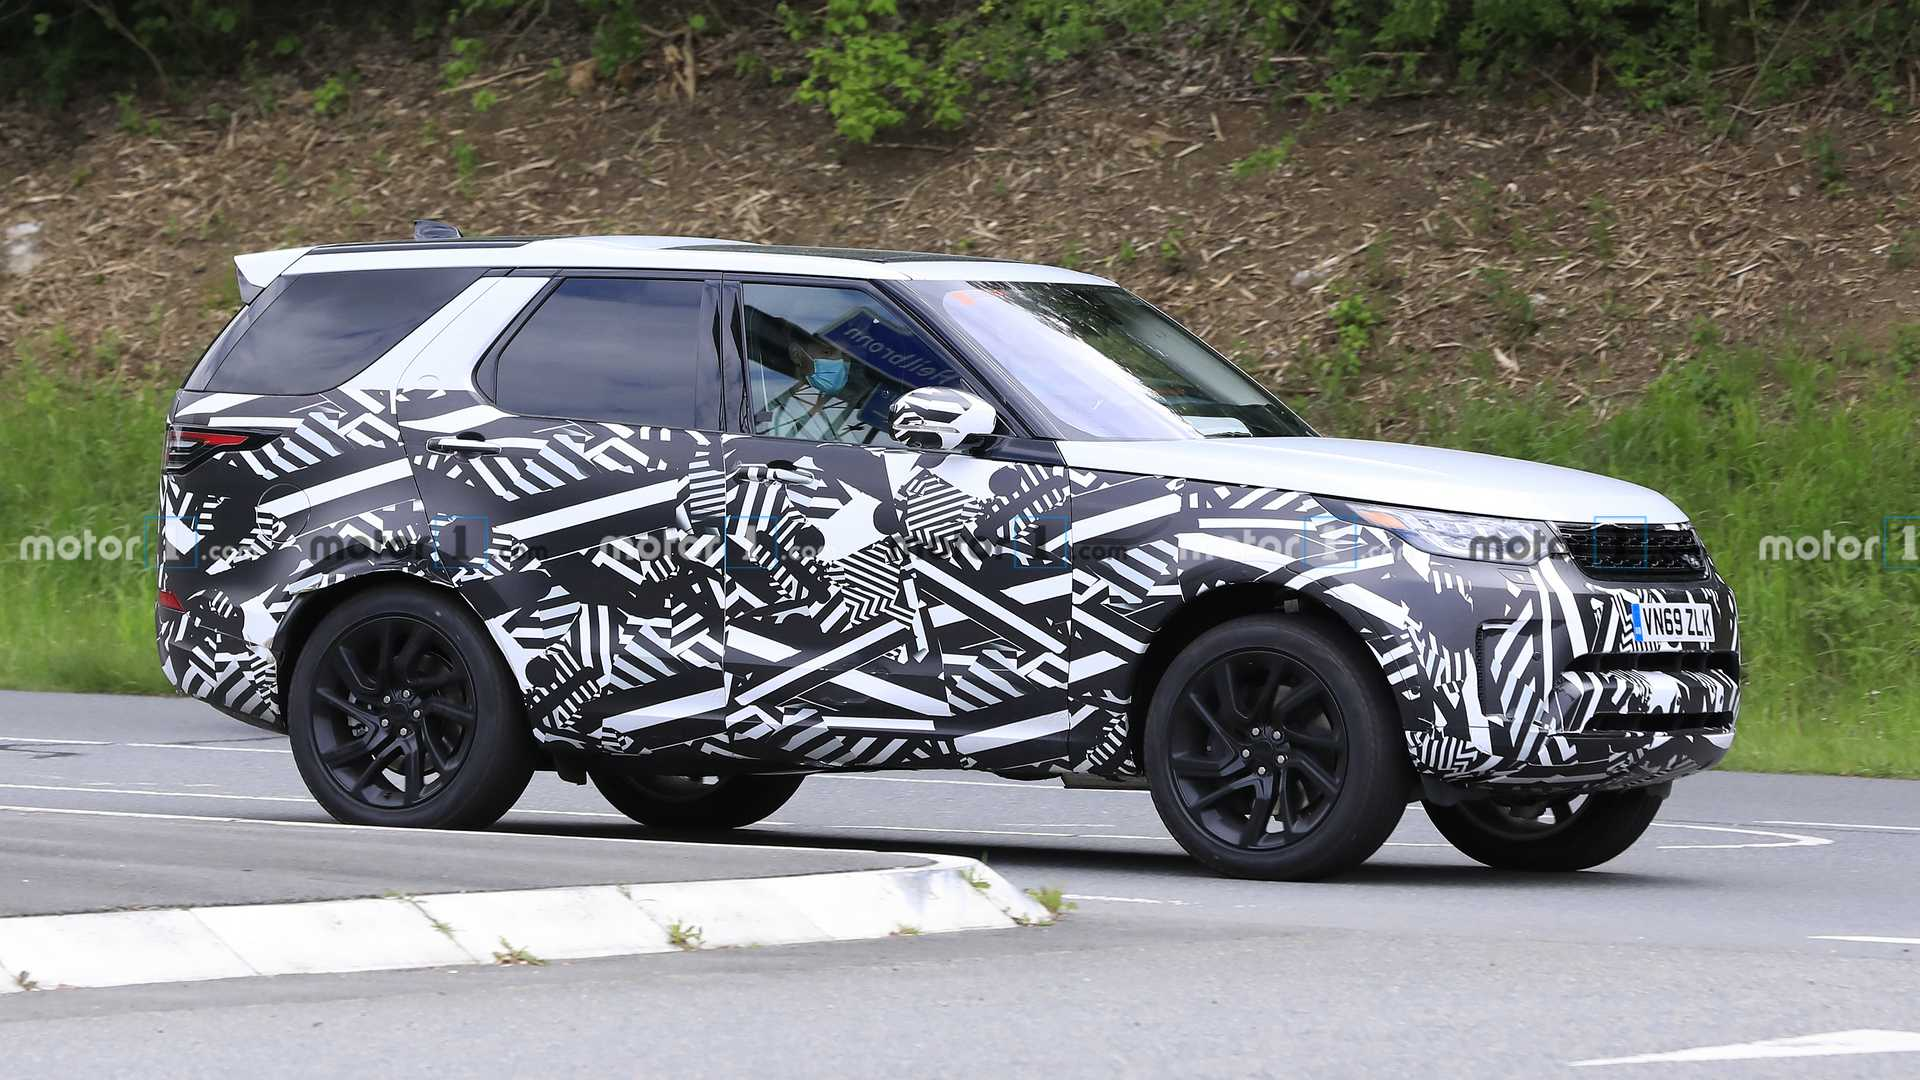 2016 - [Land Rover] Discovery V - Page 7 2021-land-rover-discovery-spy-photo